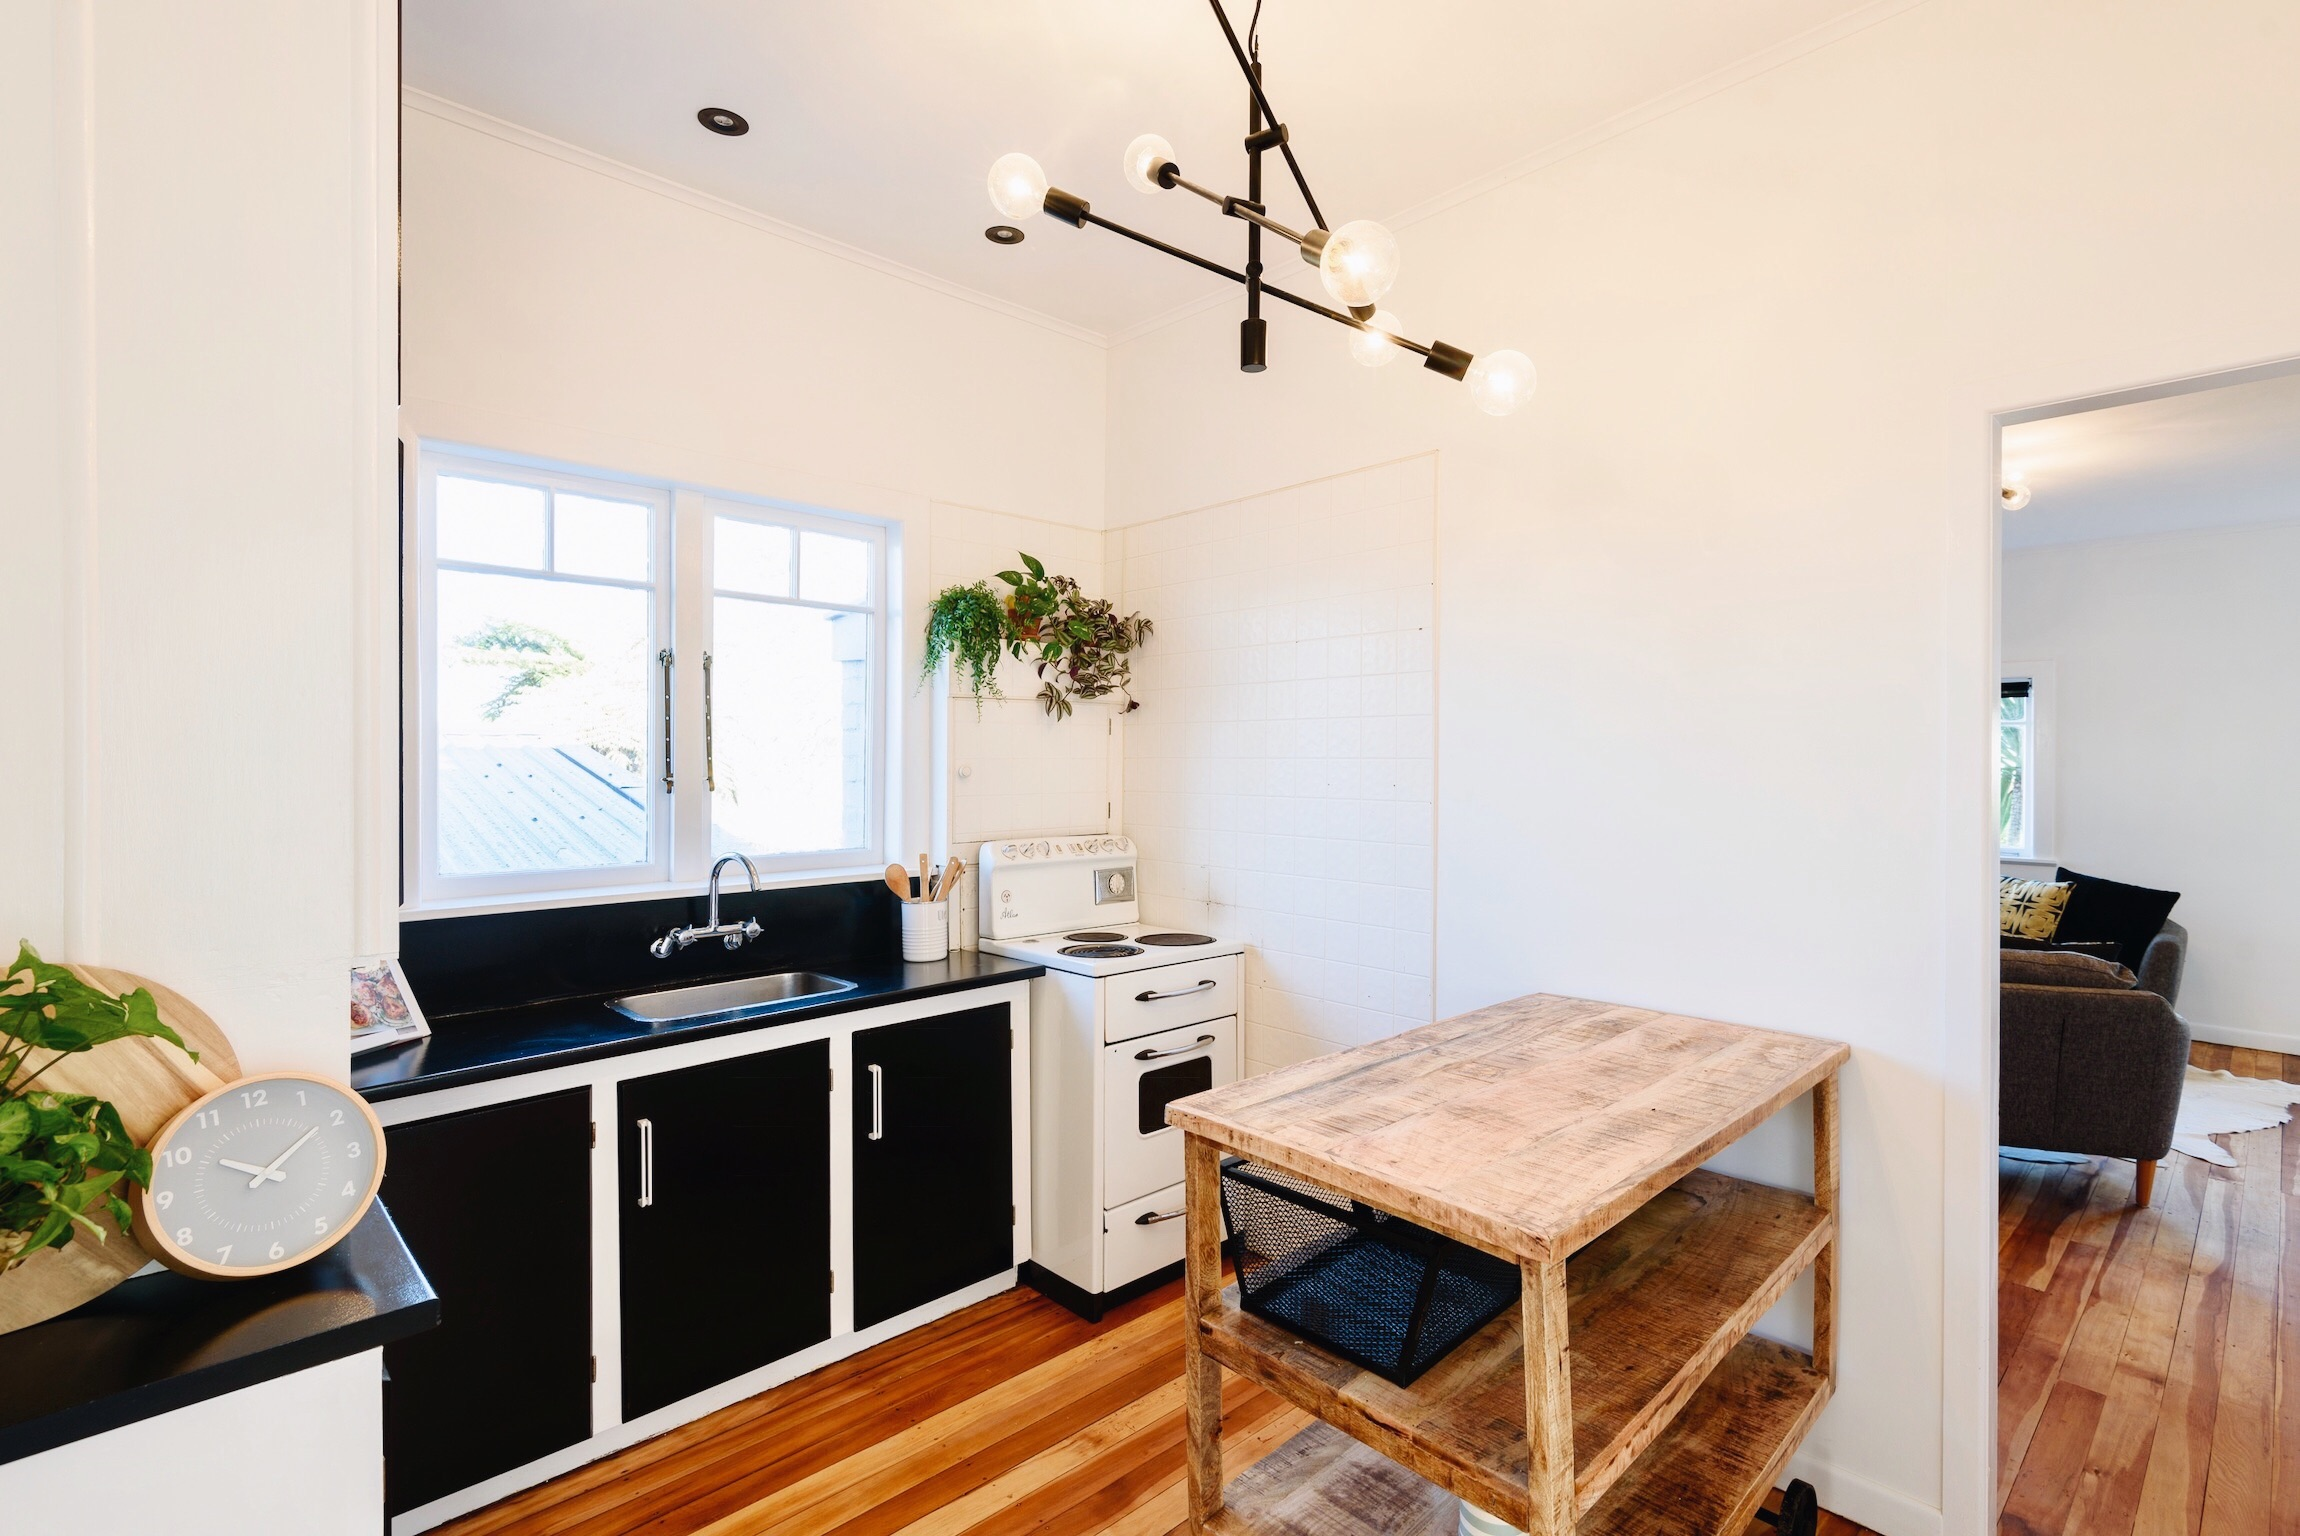 Pearson + Projects The Expert Reveal Budget Kitchen Makeover Wooden Kitchen Trolley Black Lights.jpg